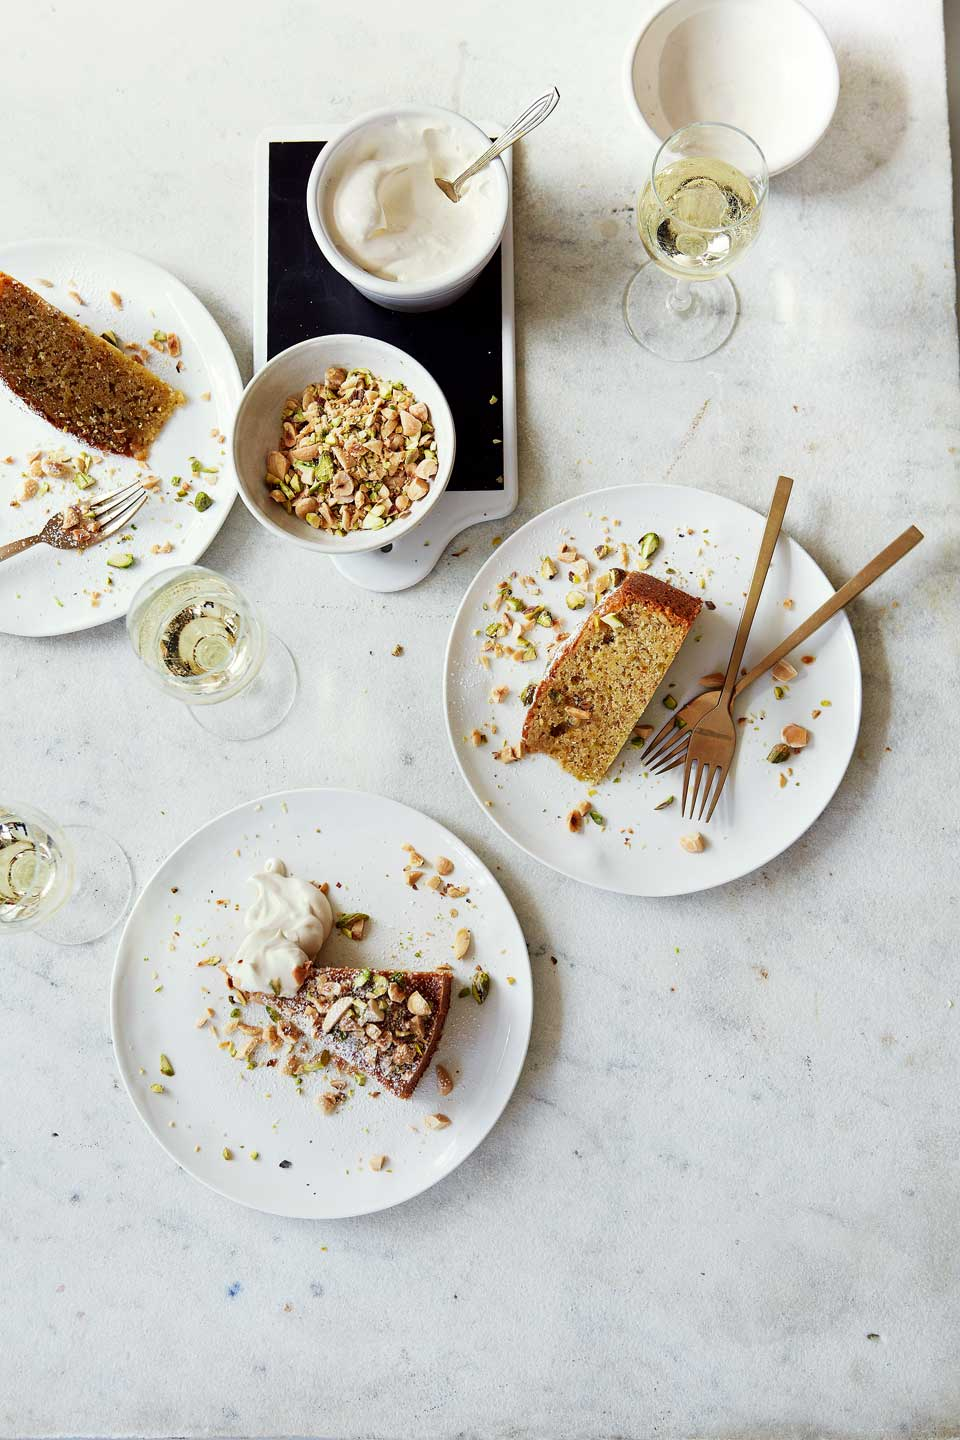 Toasted nut cake with sweet wine syllabub